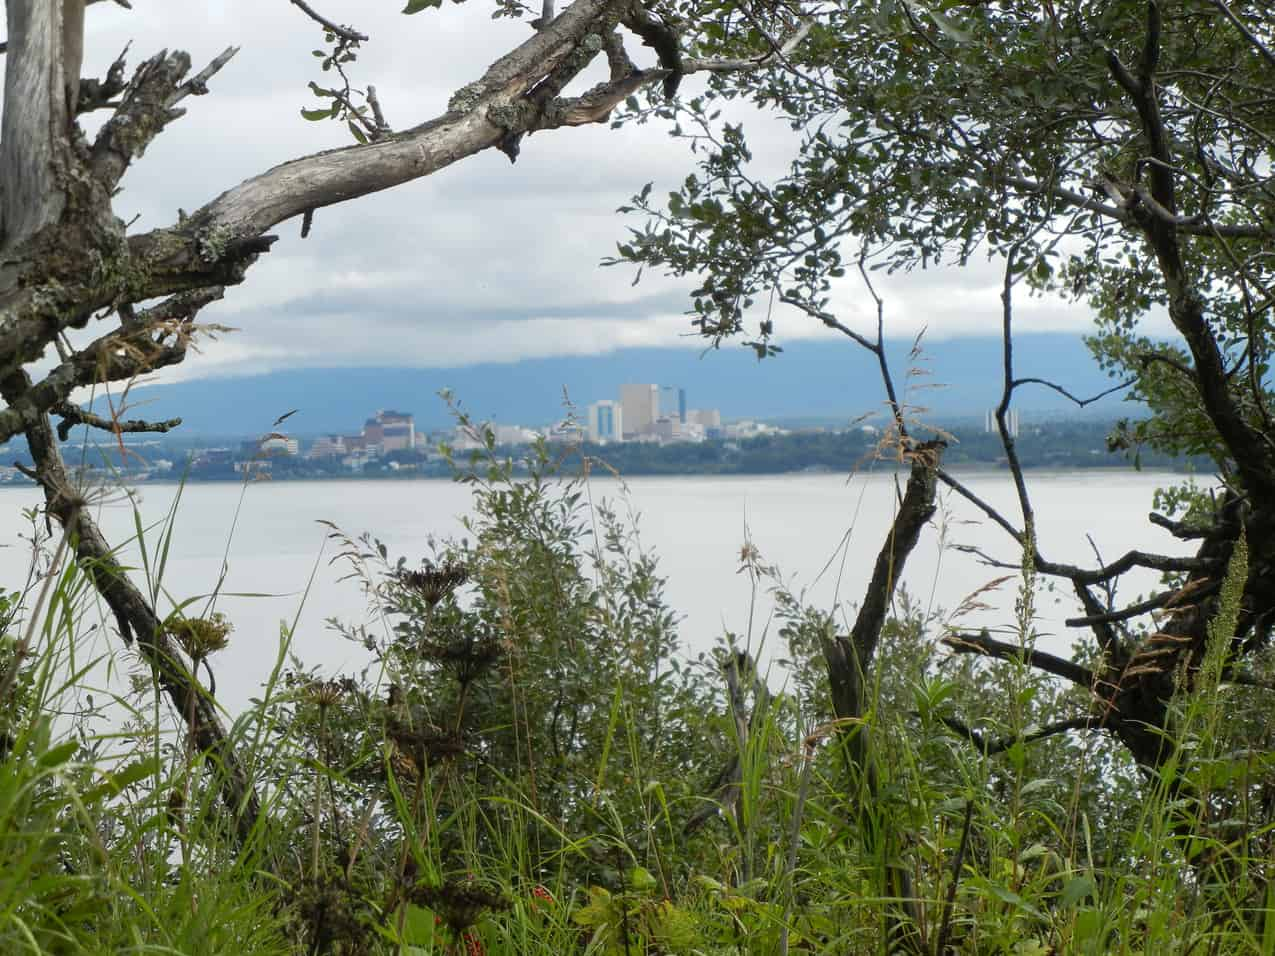 View of Anchorage, Alaska through the trees and over the water